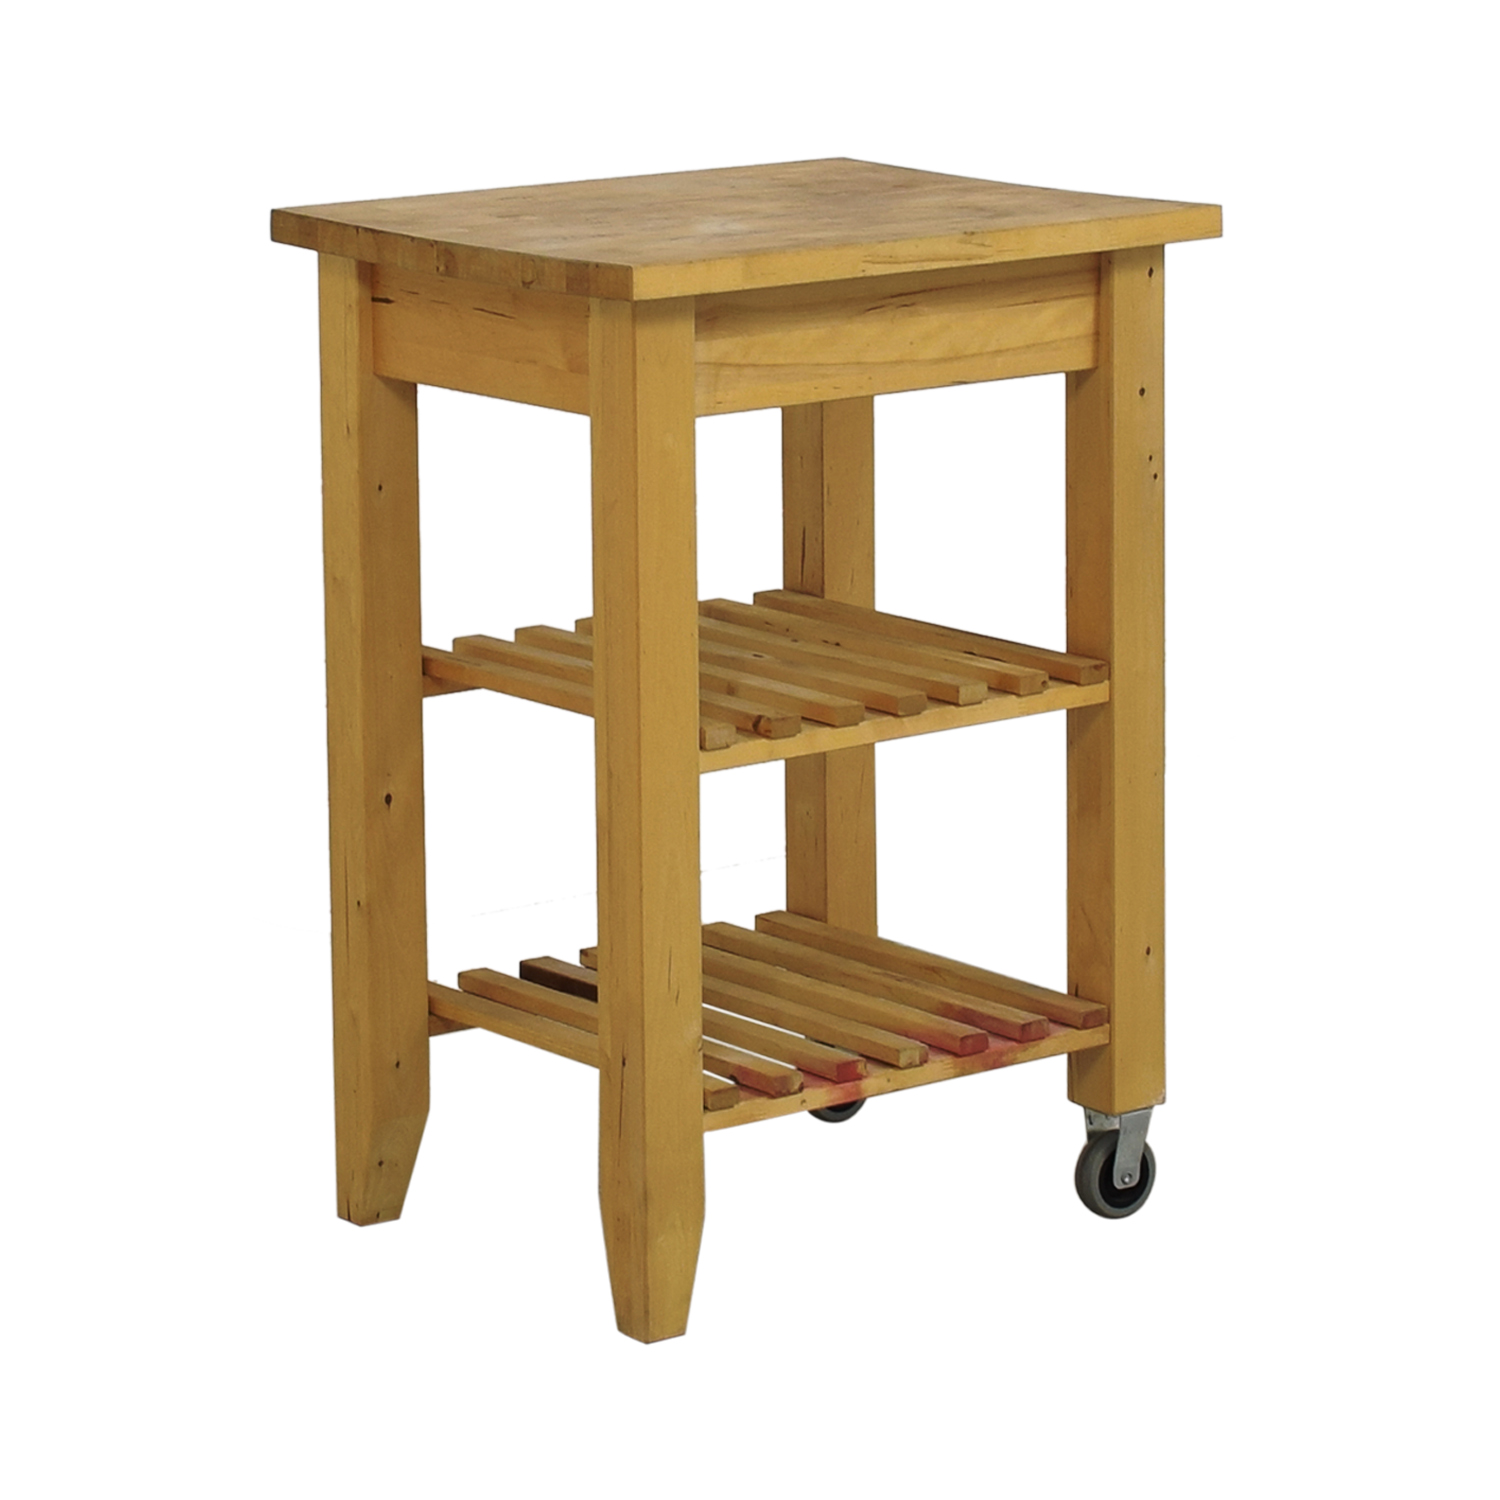 66 Off Ikea Ikea Butcher Block Kitchen Cart With Castors Tables